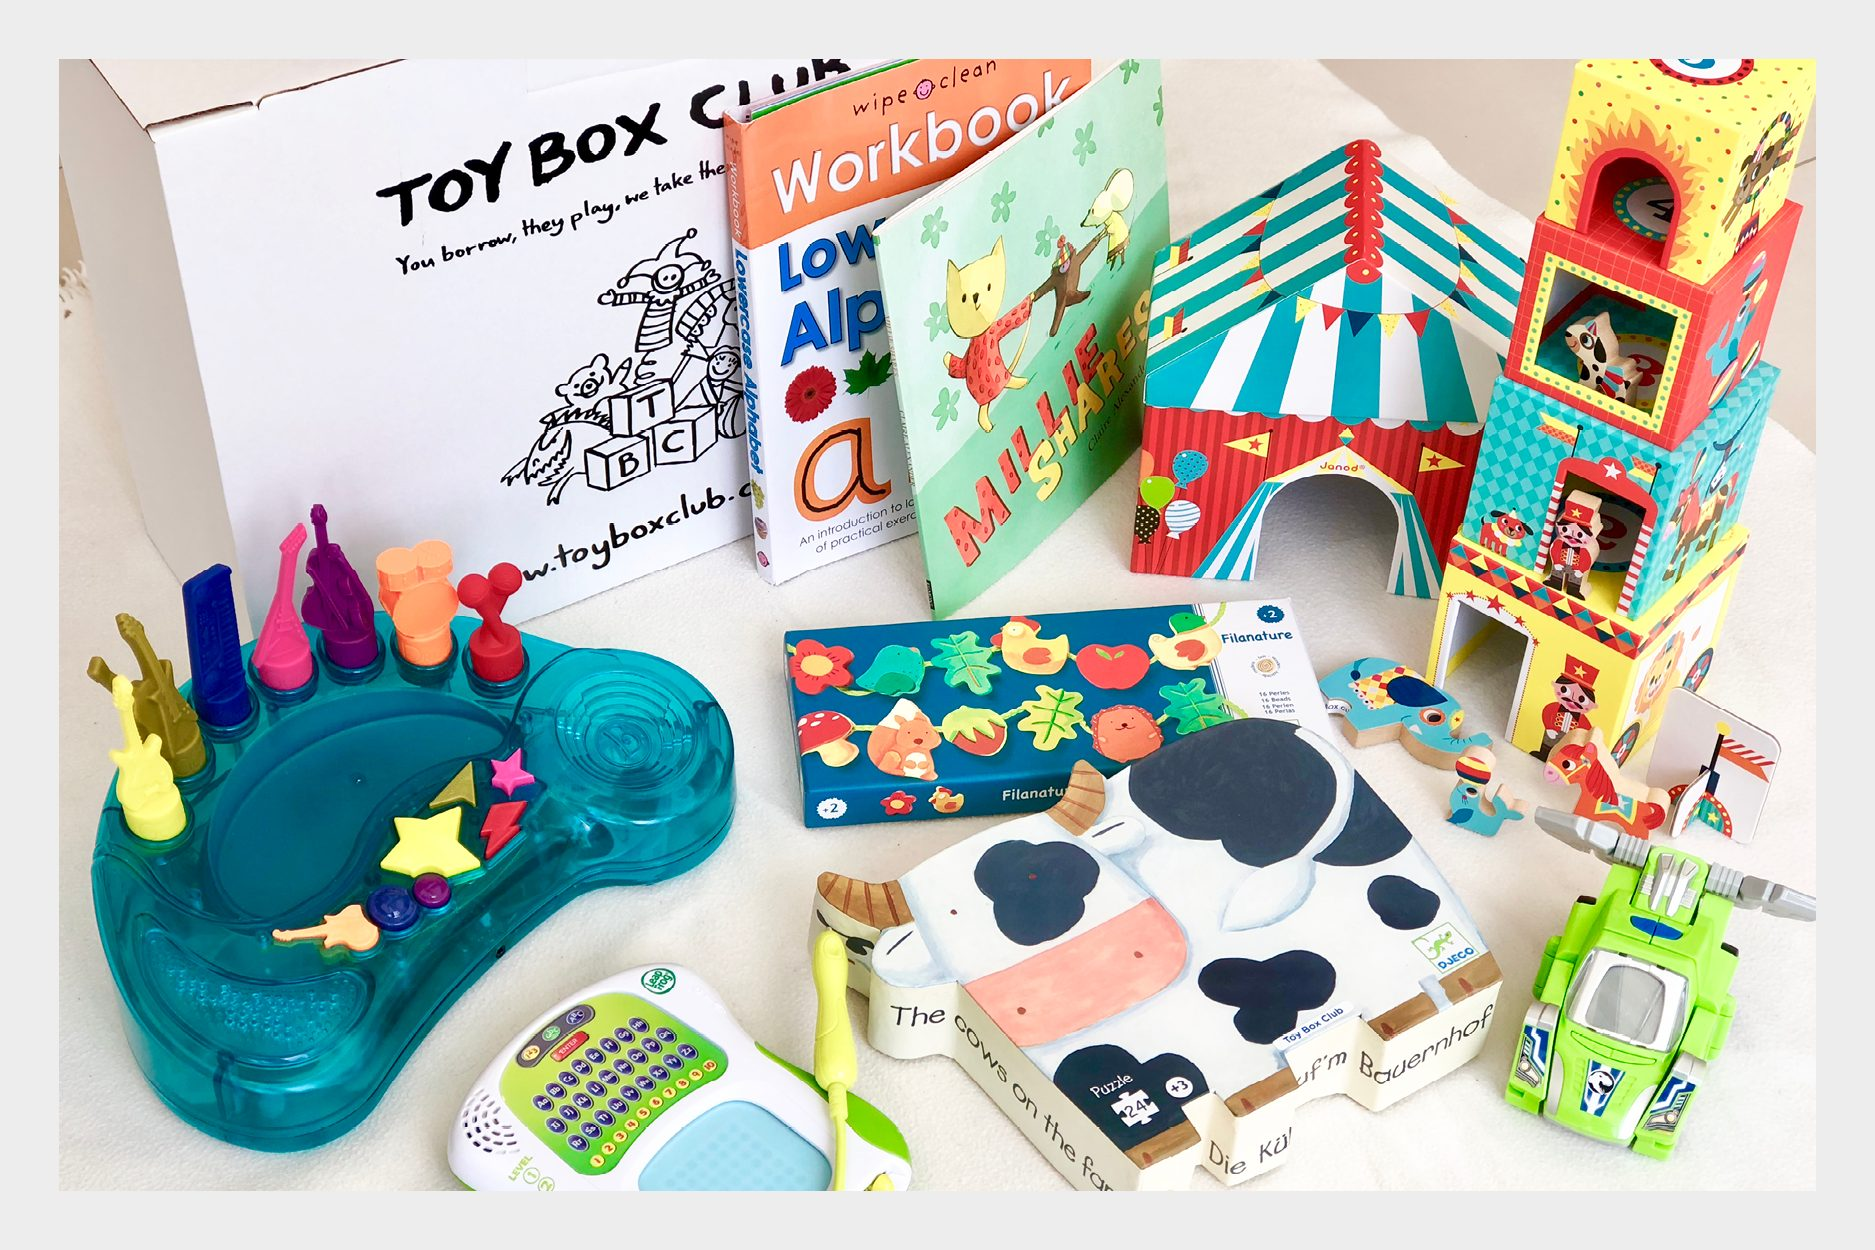 Fabric Magazine luxury cotswold rentals toy box club